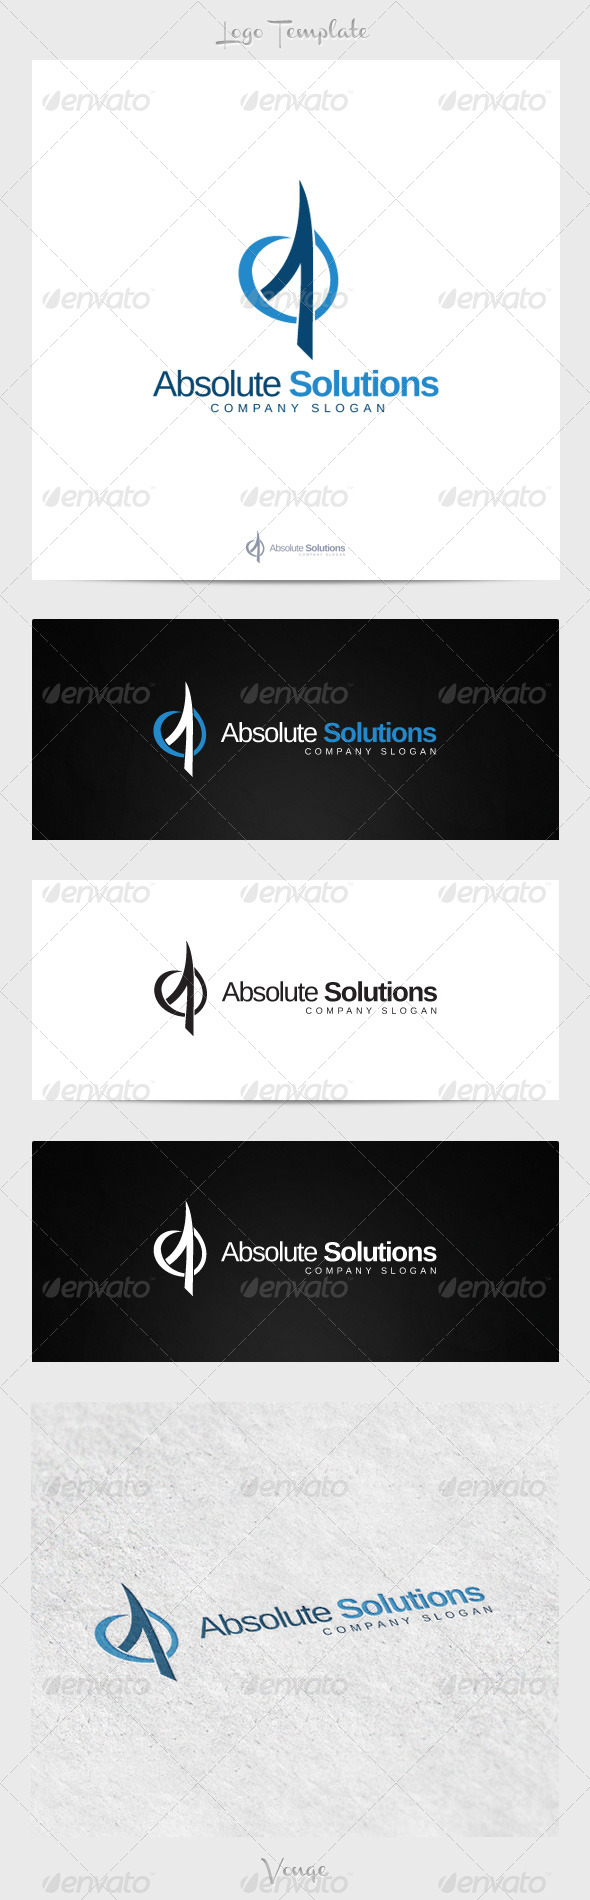 GraphicRiver Absolute Solutions 4267095